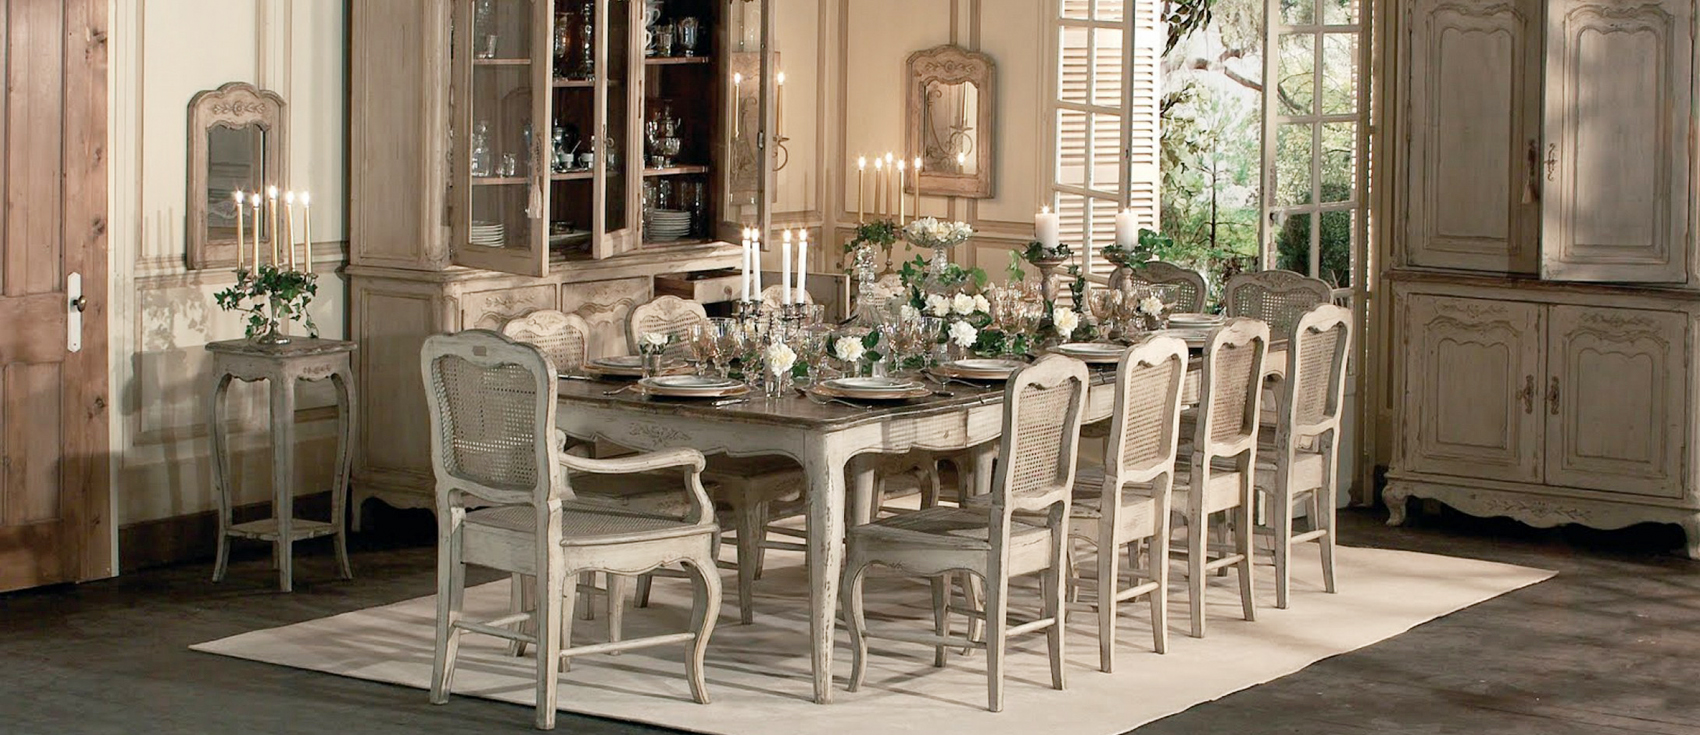 French Country Decor